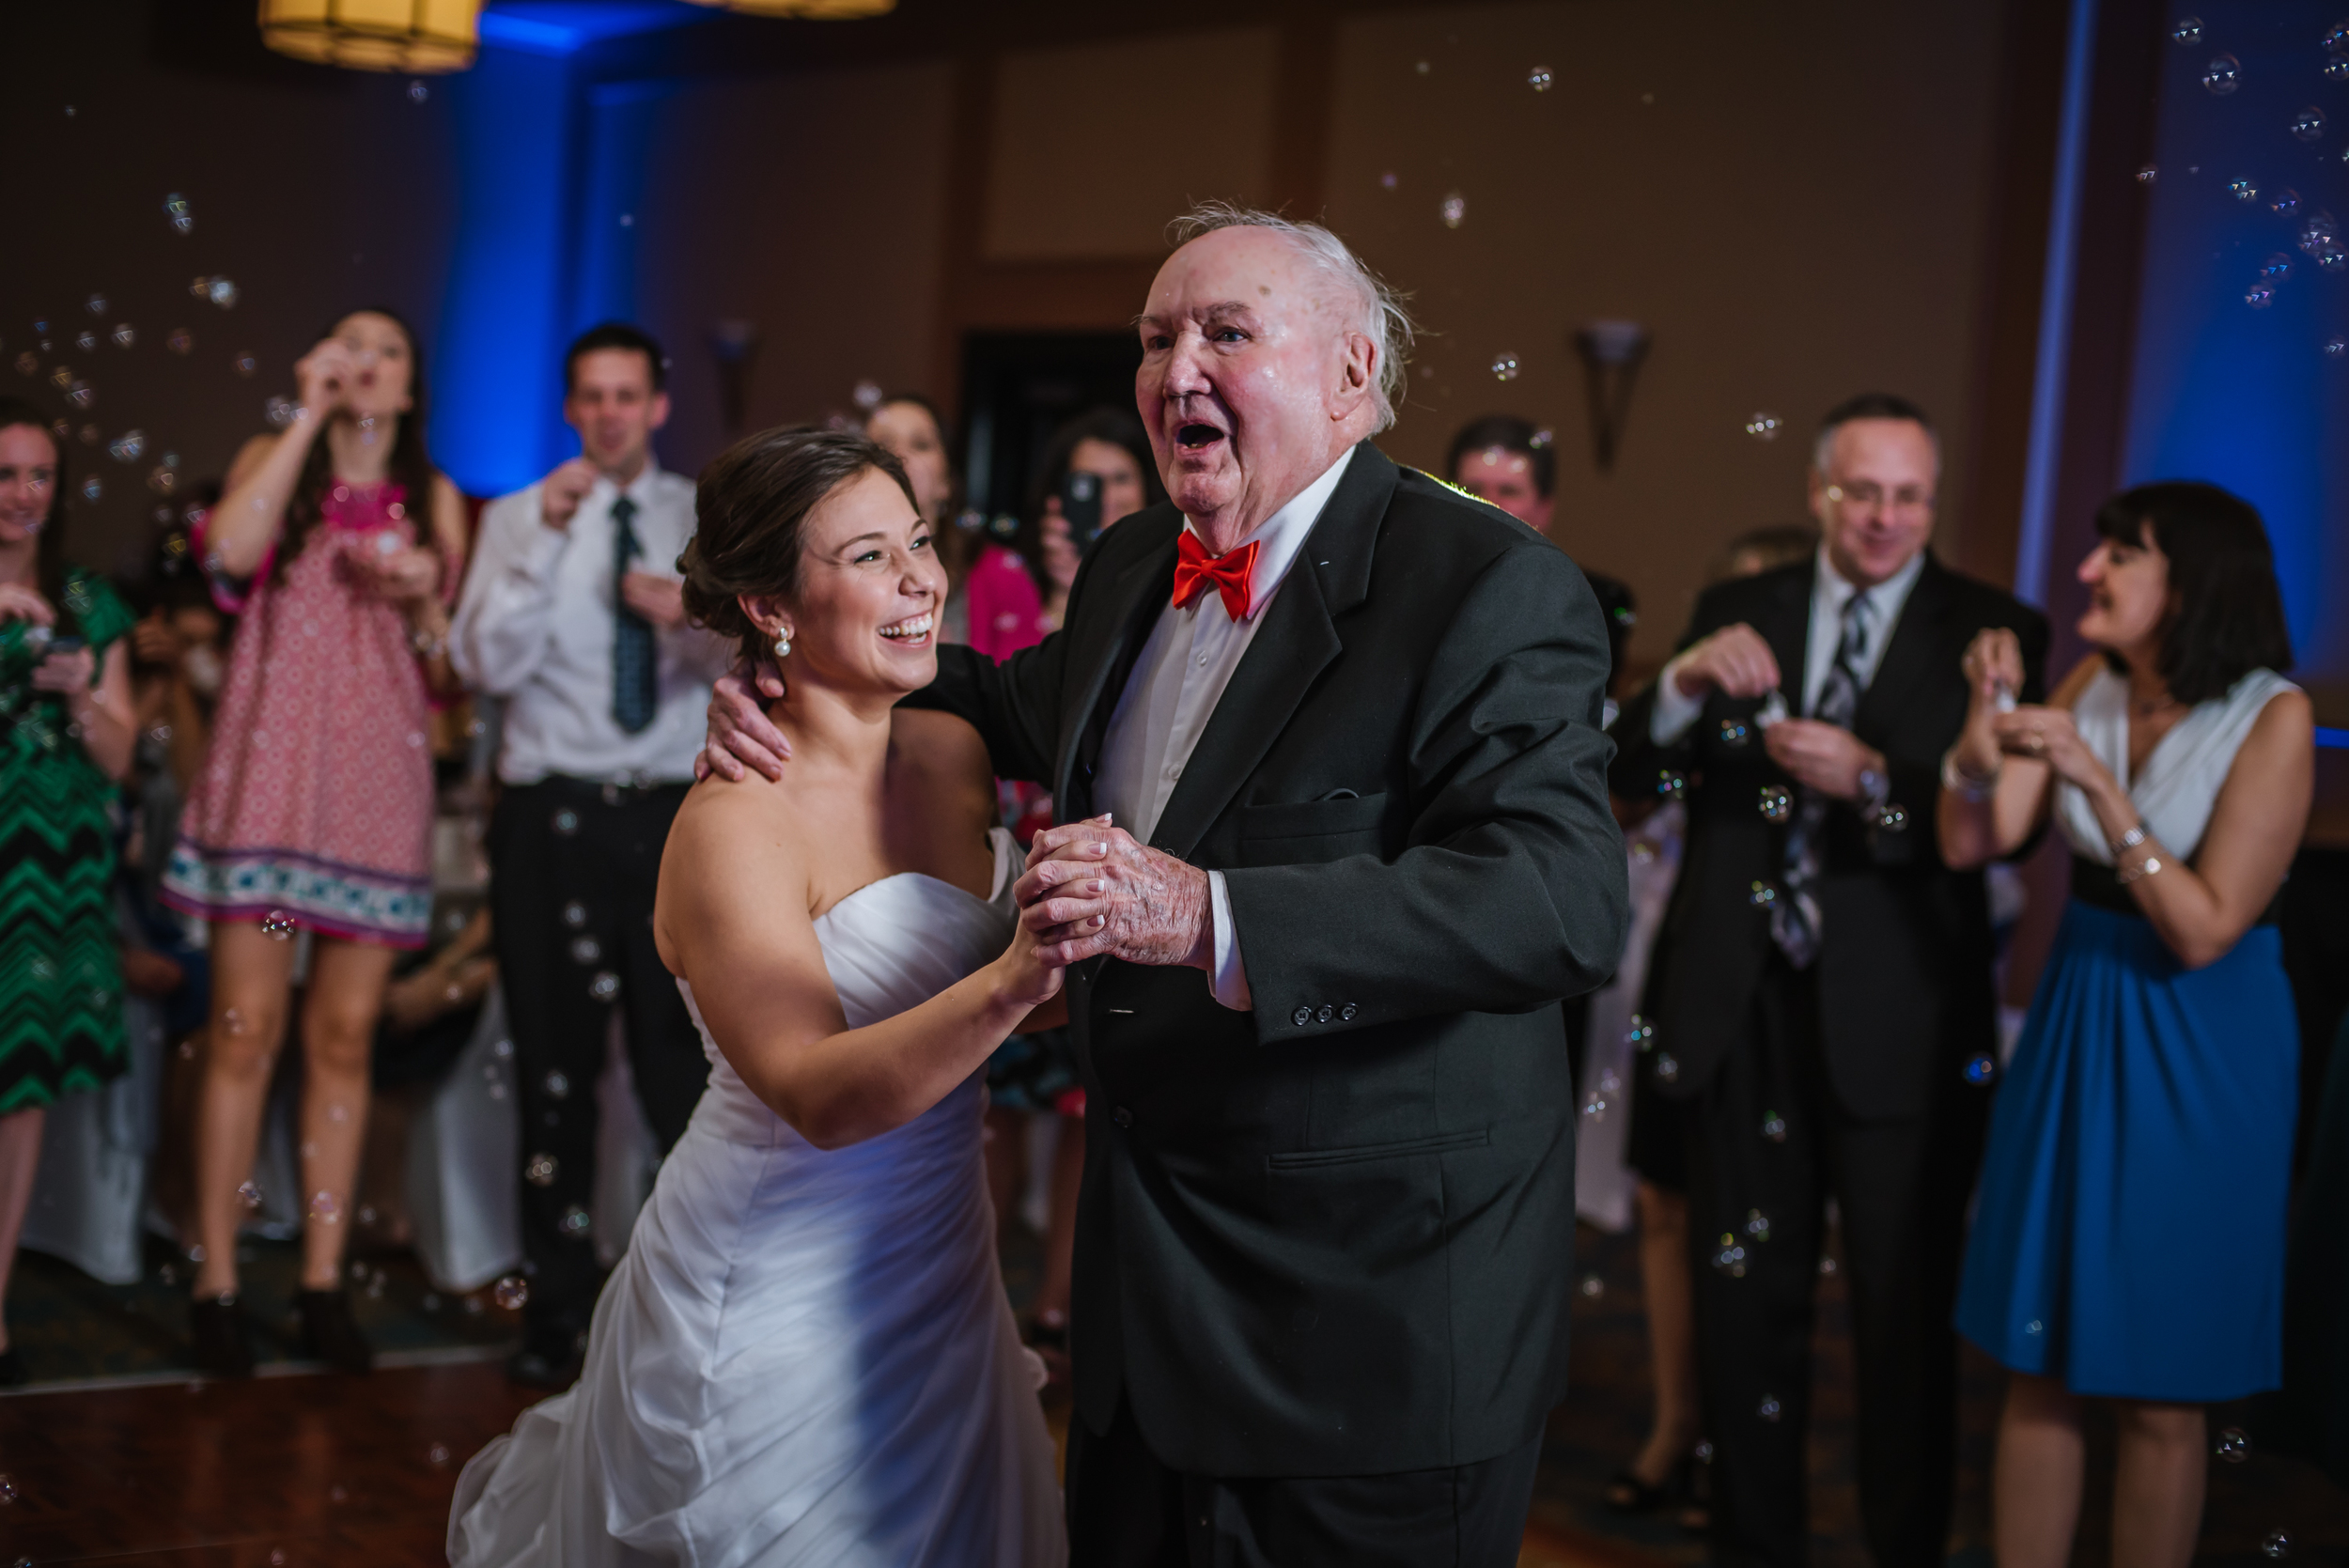 """This is still my favorite reception moment of all time! Bride Lisa danced to """"Tiny Bubbles"""" with her Grandpa as her family blew bubbles! He loved it so much!"""